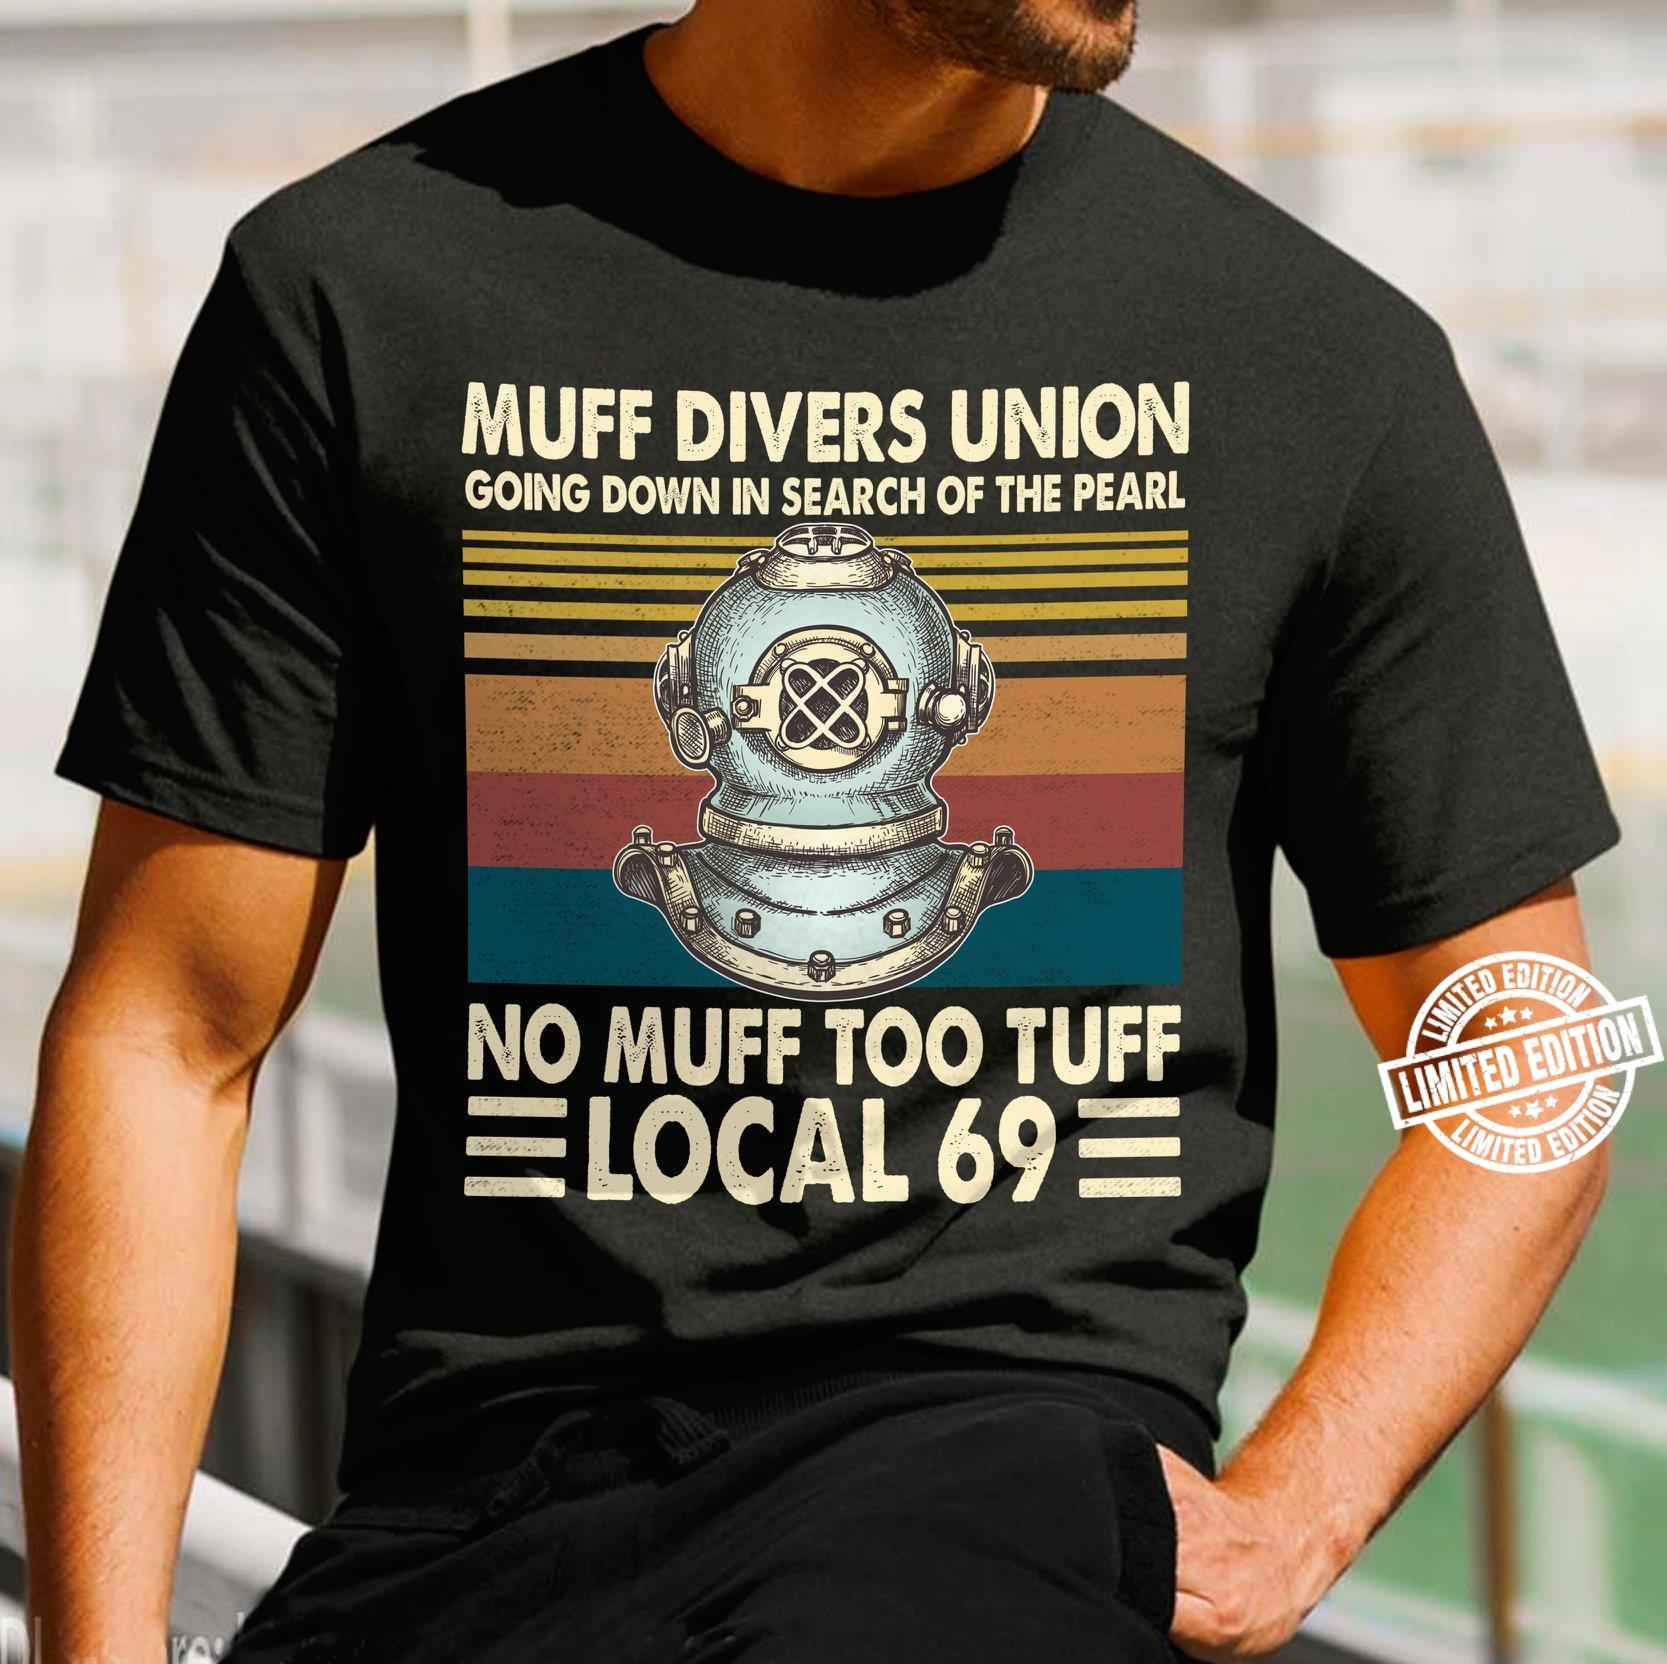 Muff divers union going down in search of the pearl shirt